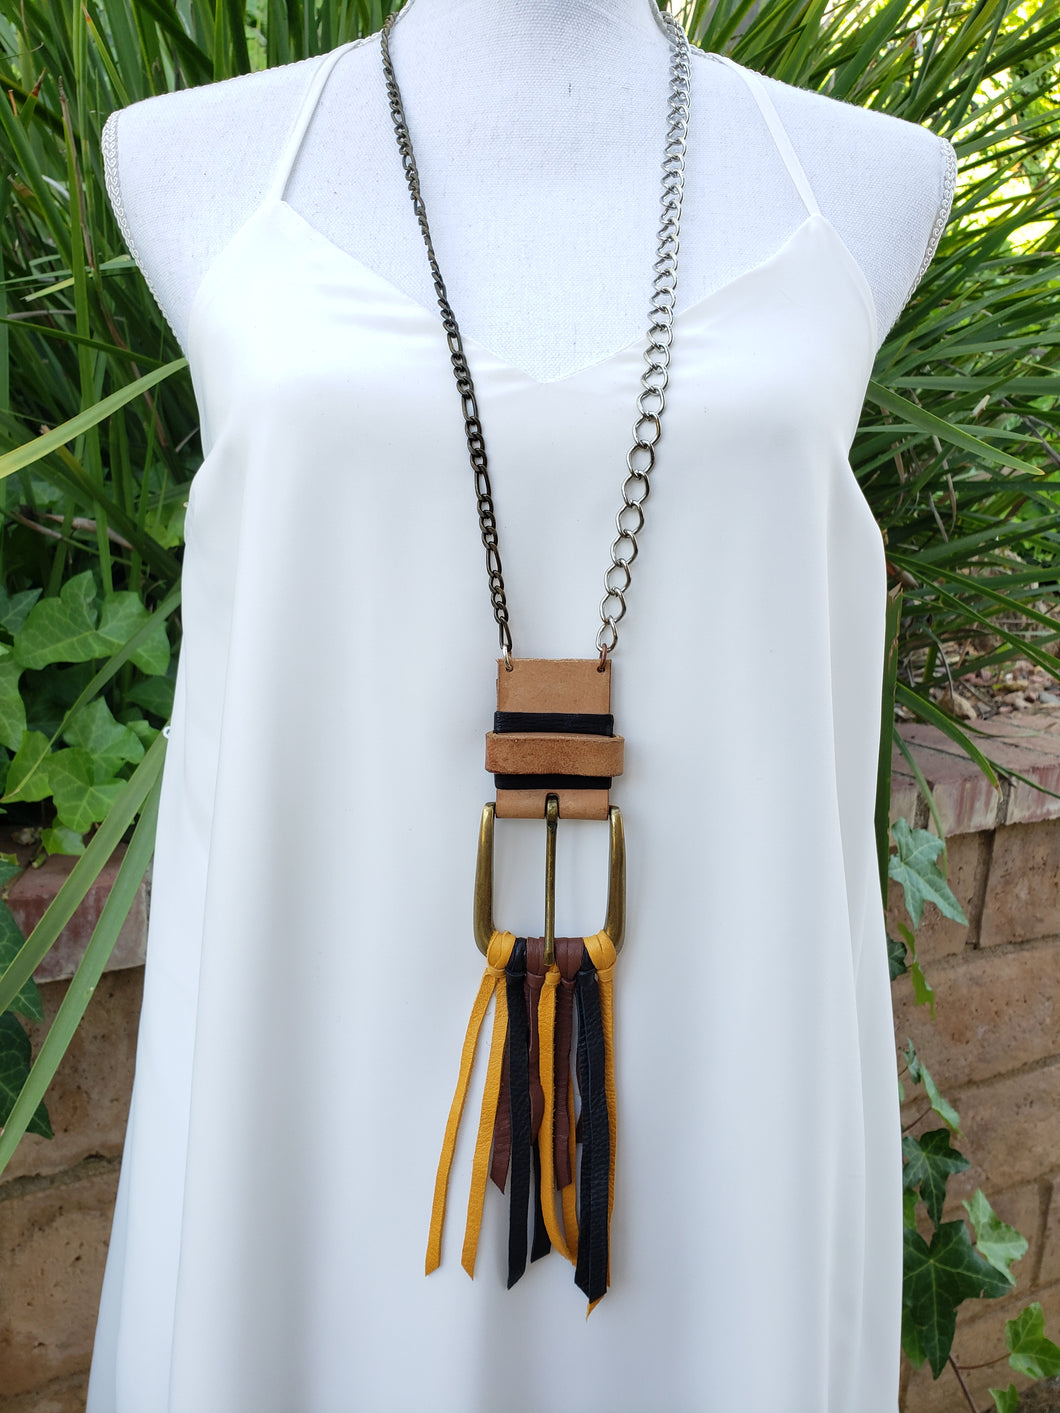 Buckle necklace